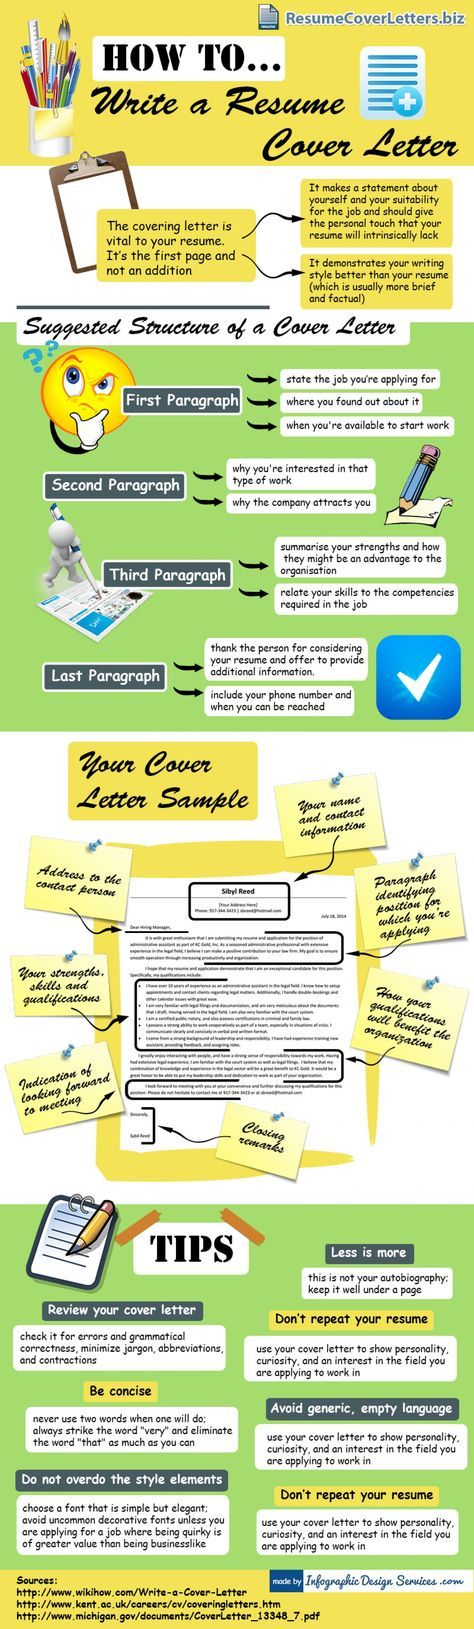 Best 20+ Resume writing tips ideas on Pinterest Cv writing tips - resume writing cover letter